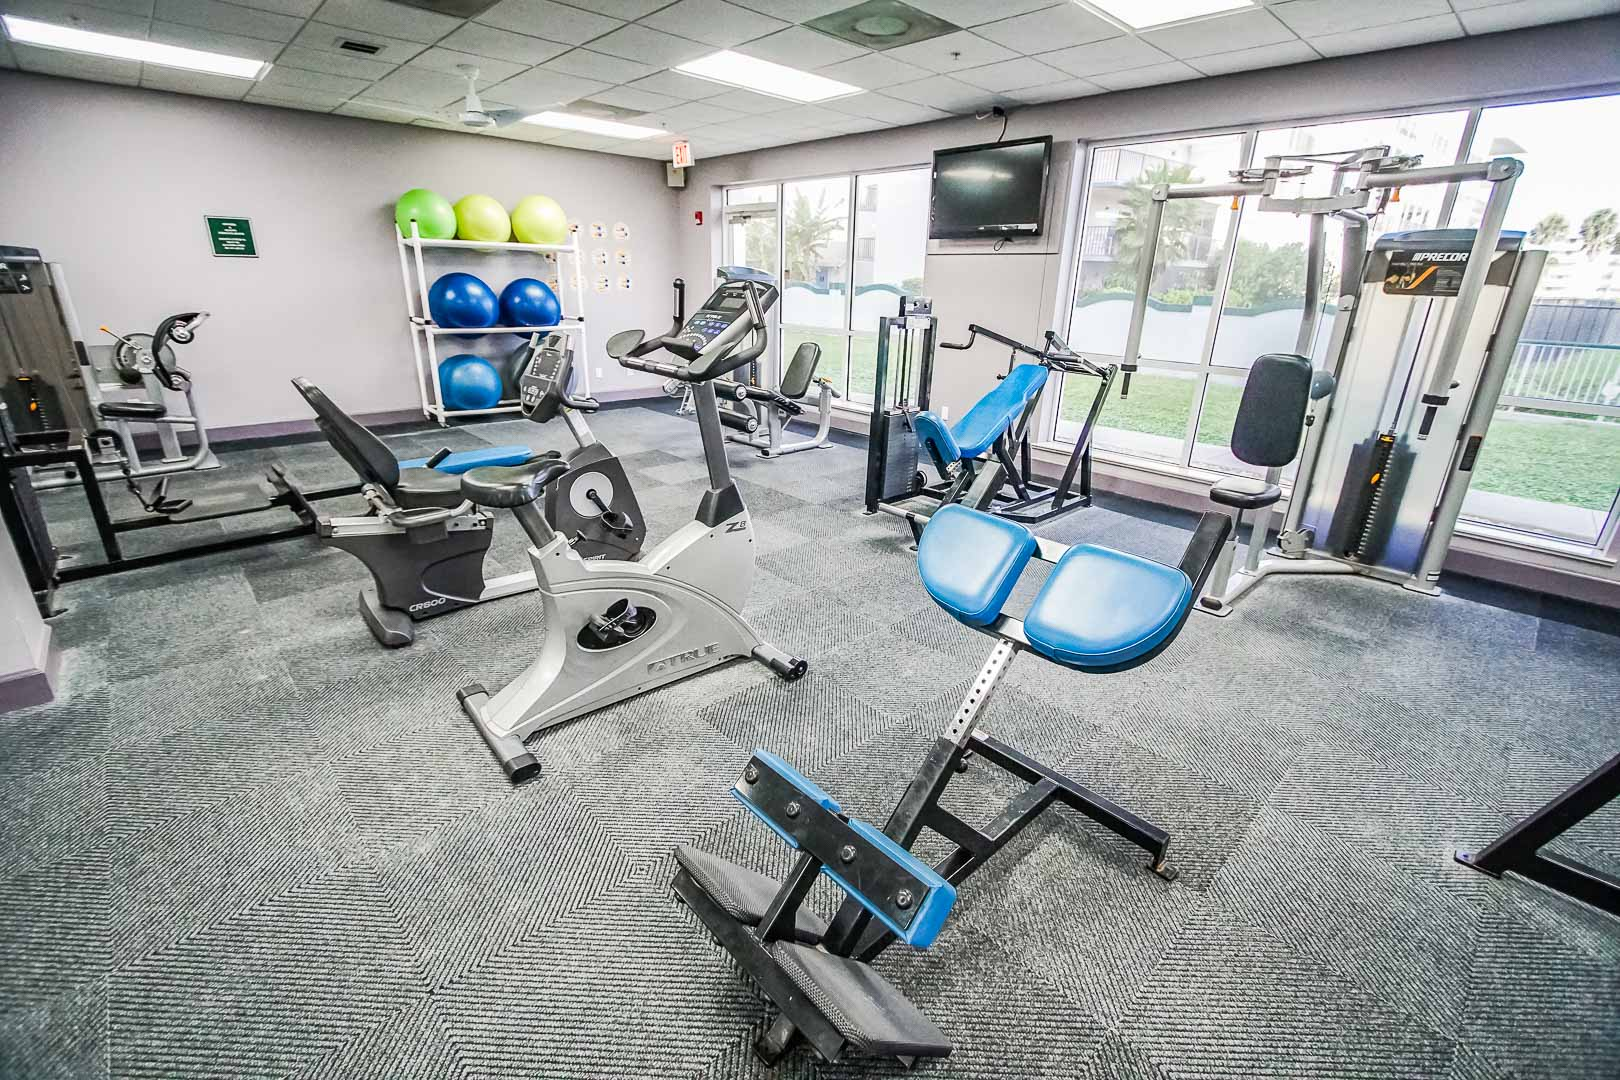 An expansive exercise room at VRI's The Resort on Cocoa Beach in Florida.